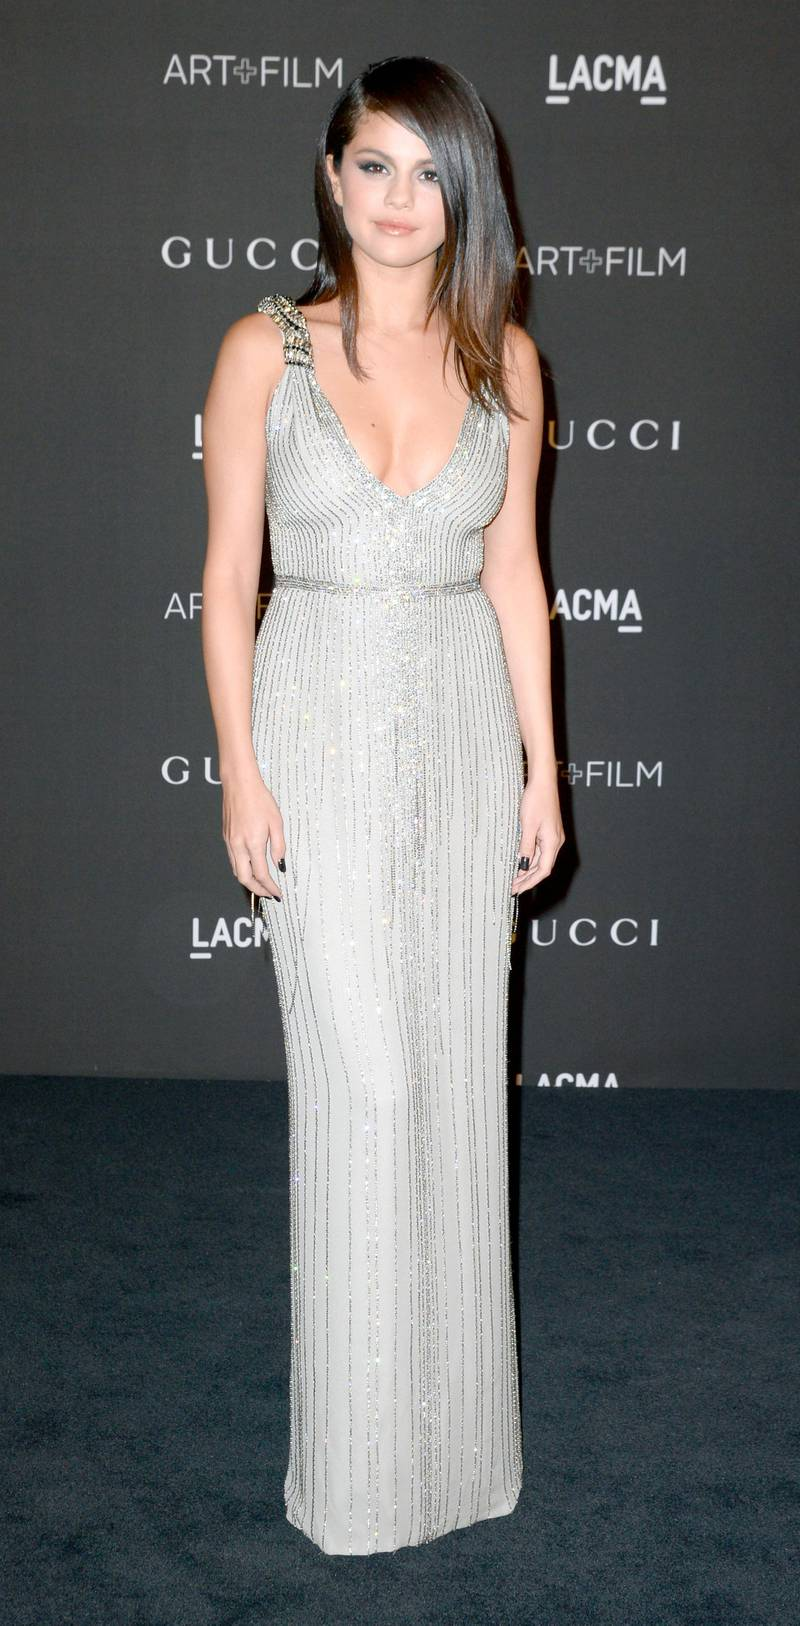 epa04472942 US actress and singer Selena Gomez arrives for the 2014 LACMA Art + Film Gala at the Los Angeles County Museum of Art (LACMA) in Los Angeles, California, USA, 01 November 2014. The event honored US artist Barbara Kruger and US director Quentin Tarantino.  EPA/MICHAEL NELSON